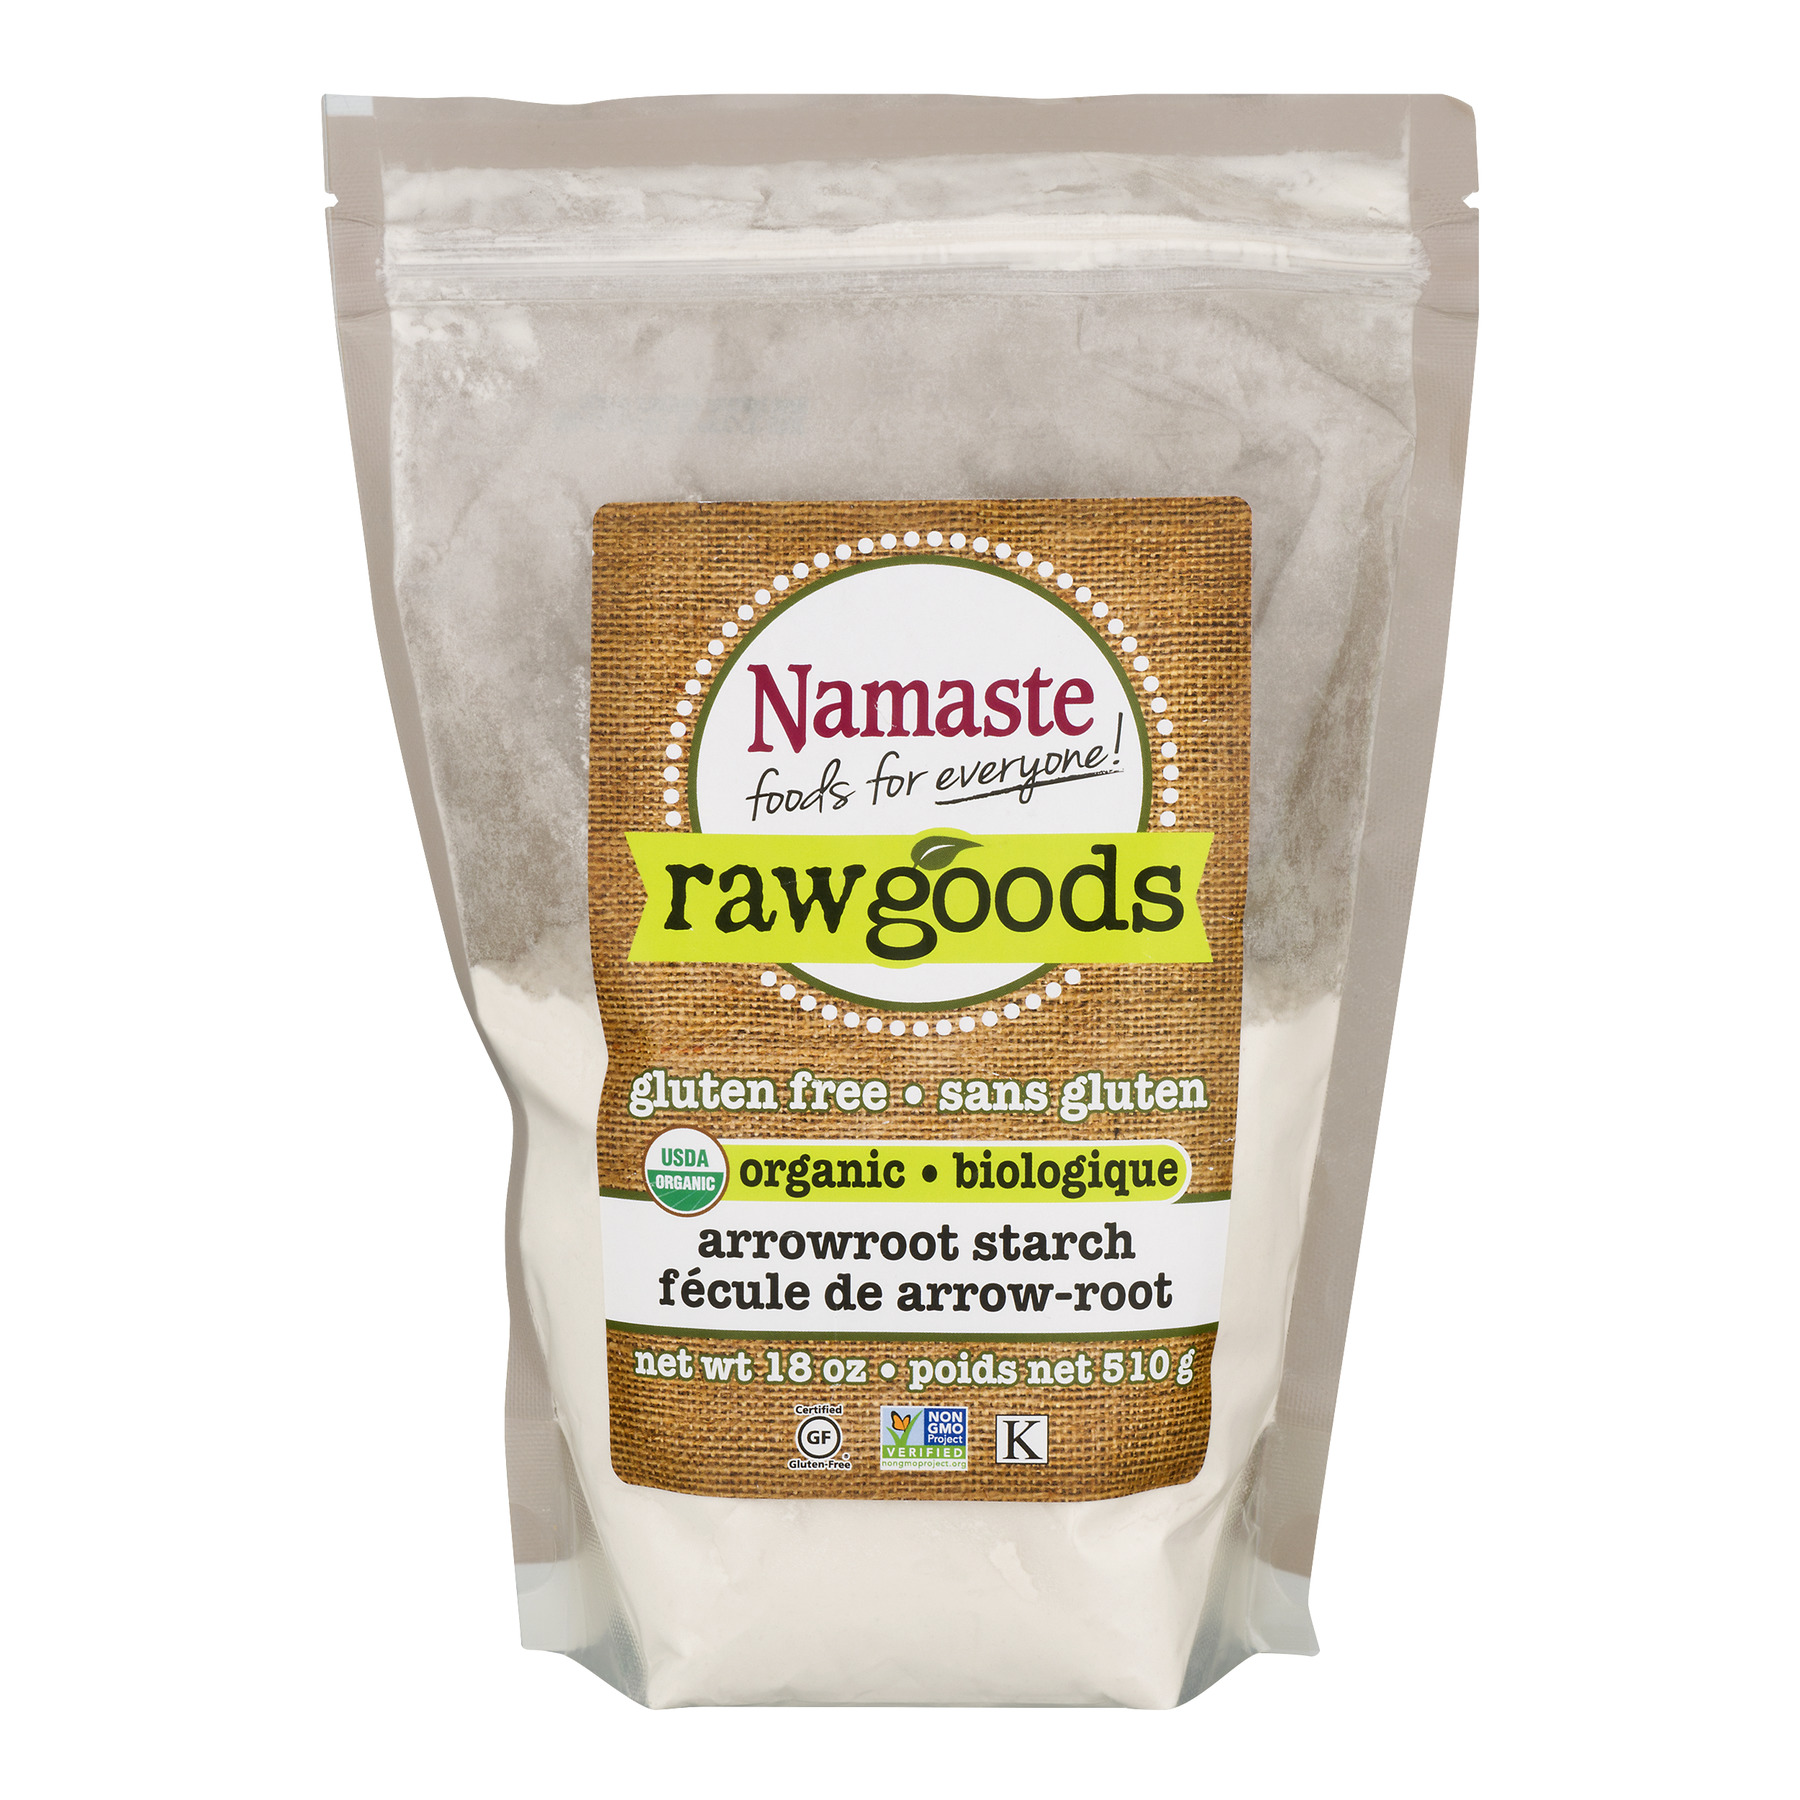 Namaste Foods Raw Goods Gluten Free Organic Arrowroot Starch, 18 oz